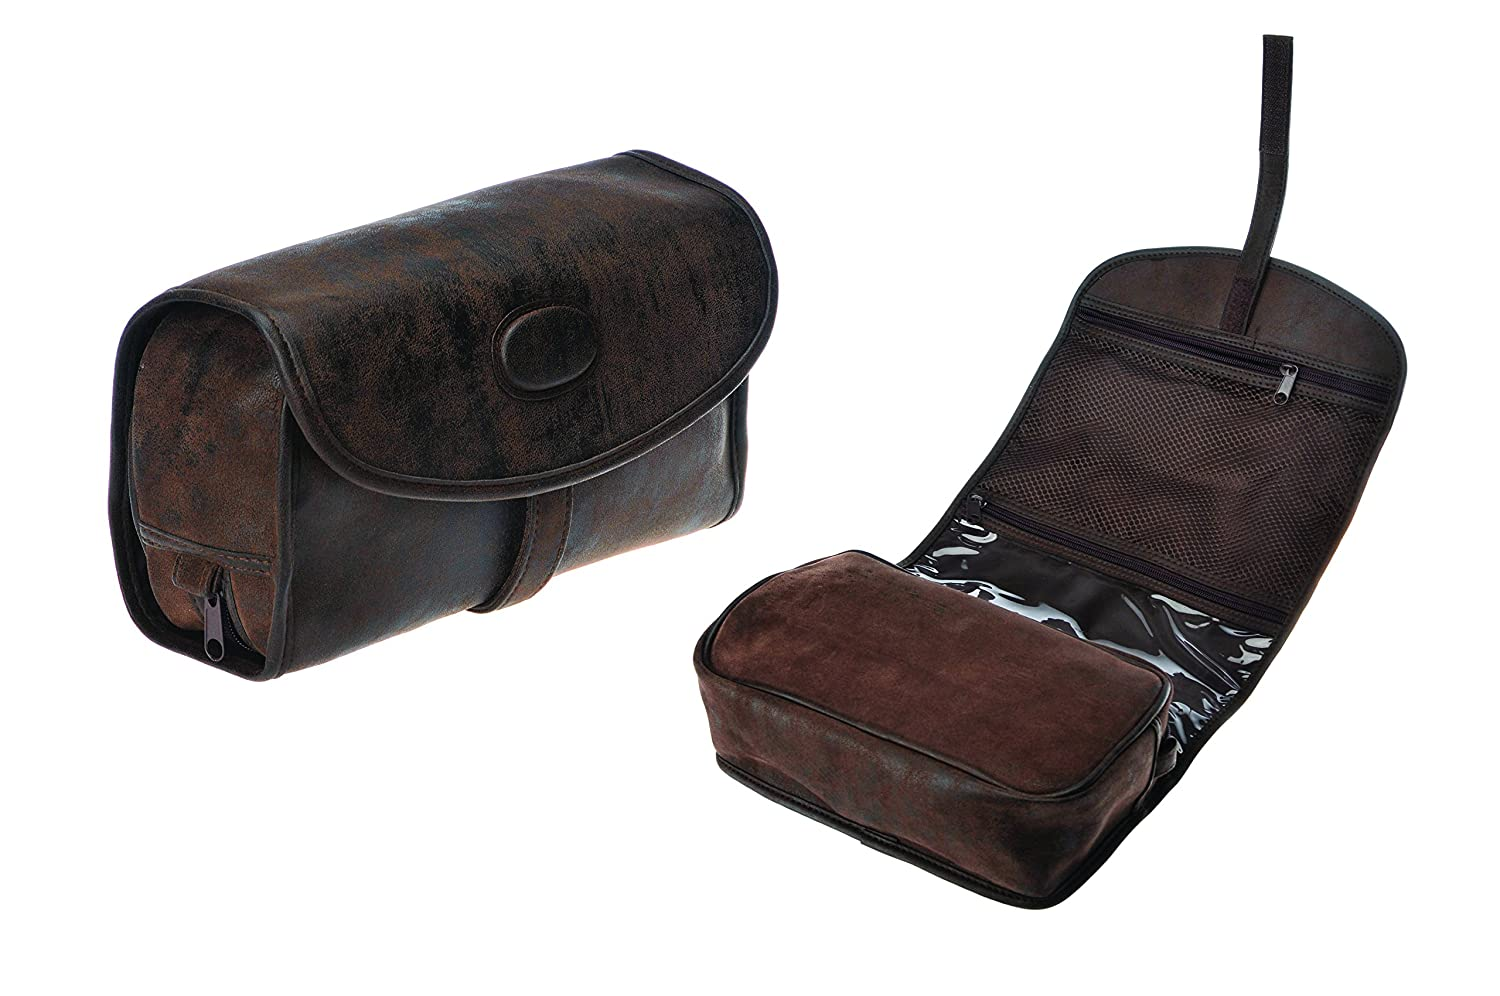 Danielle Enterprises Montana for Him Travel Hang Up Caddy with Velcro, Deep Brown 8338